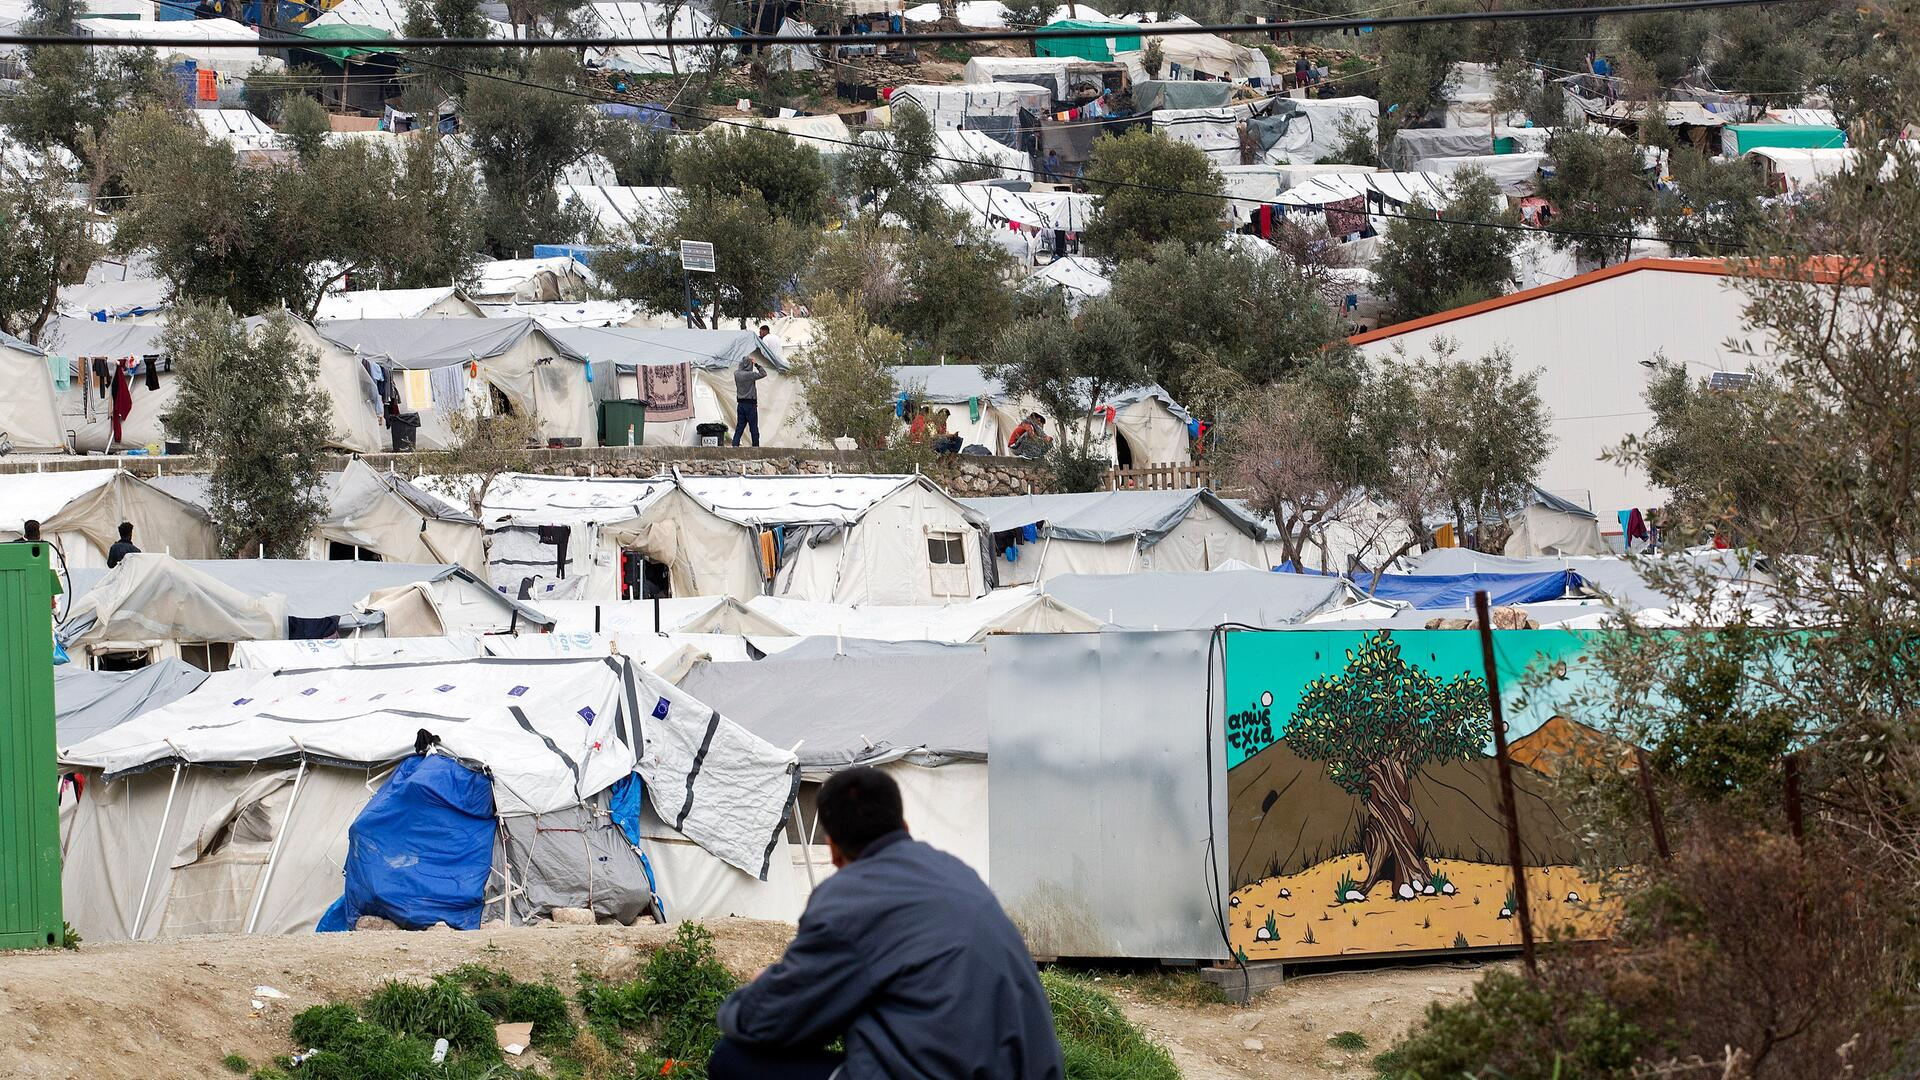 Rows of tents crowded together in Moria refugee camp, Greece